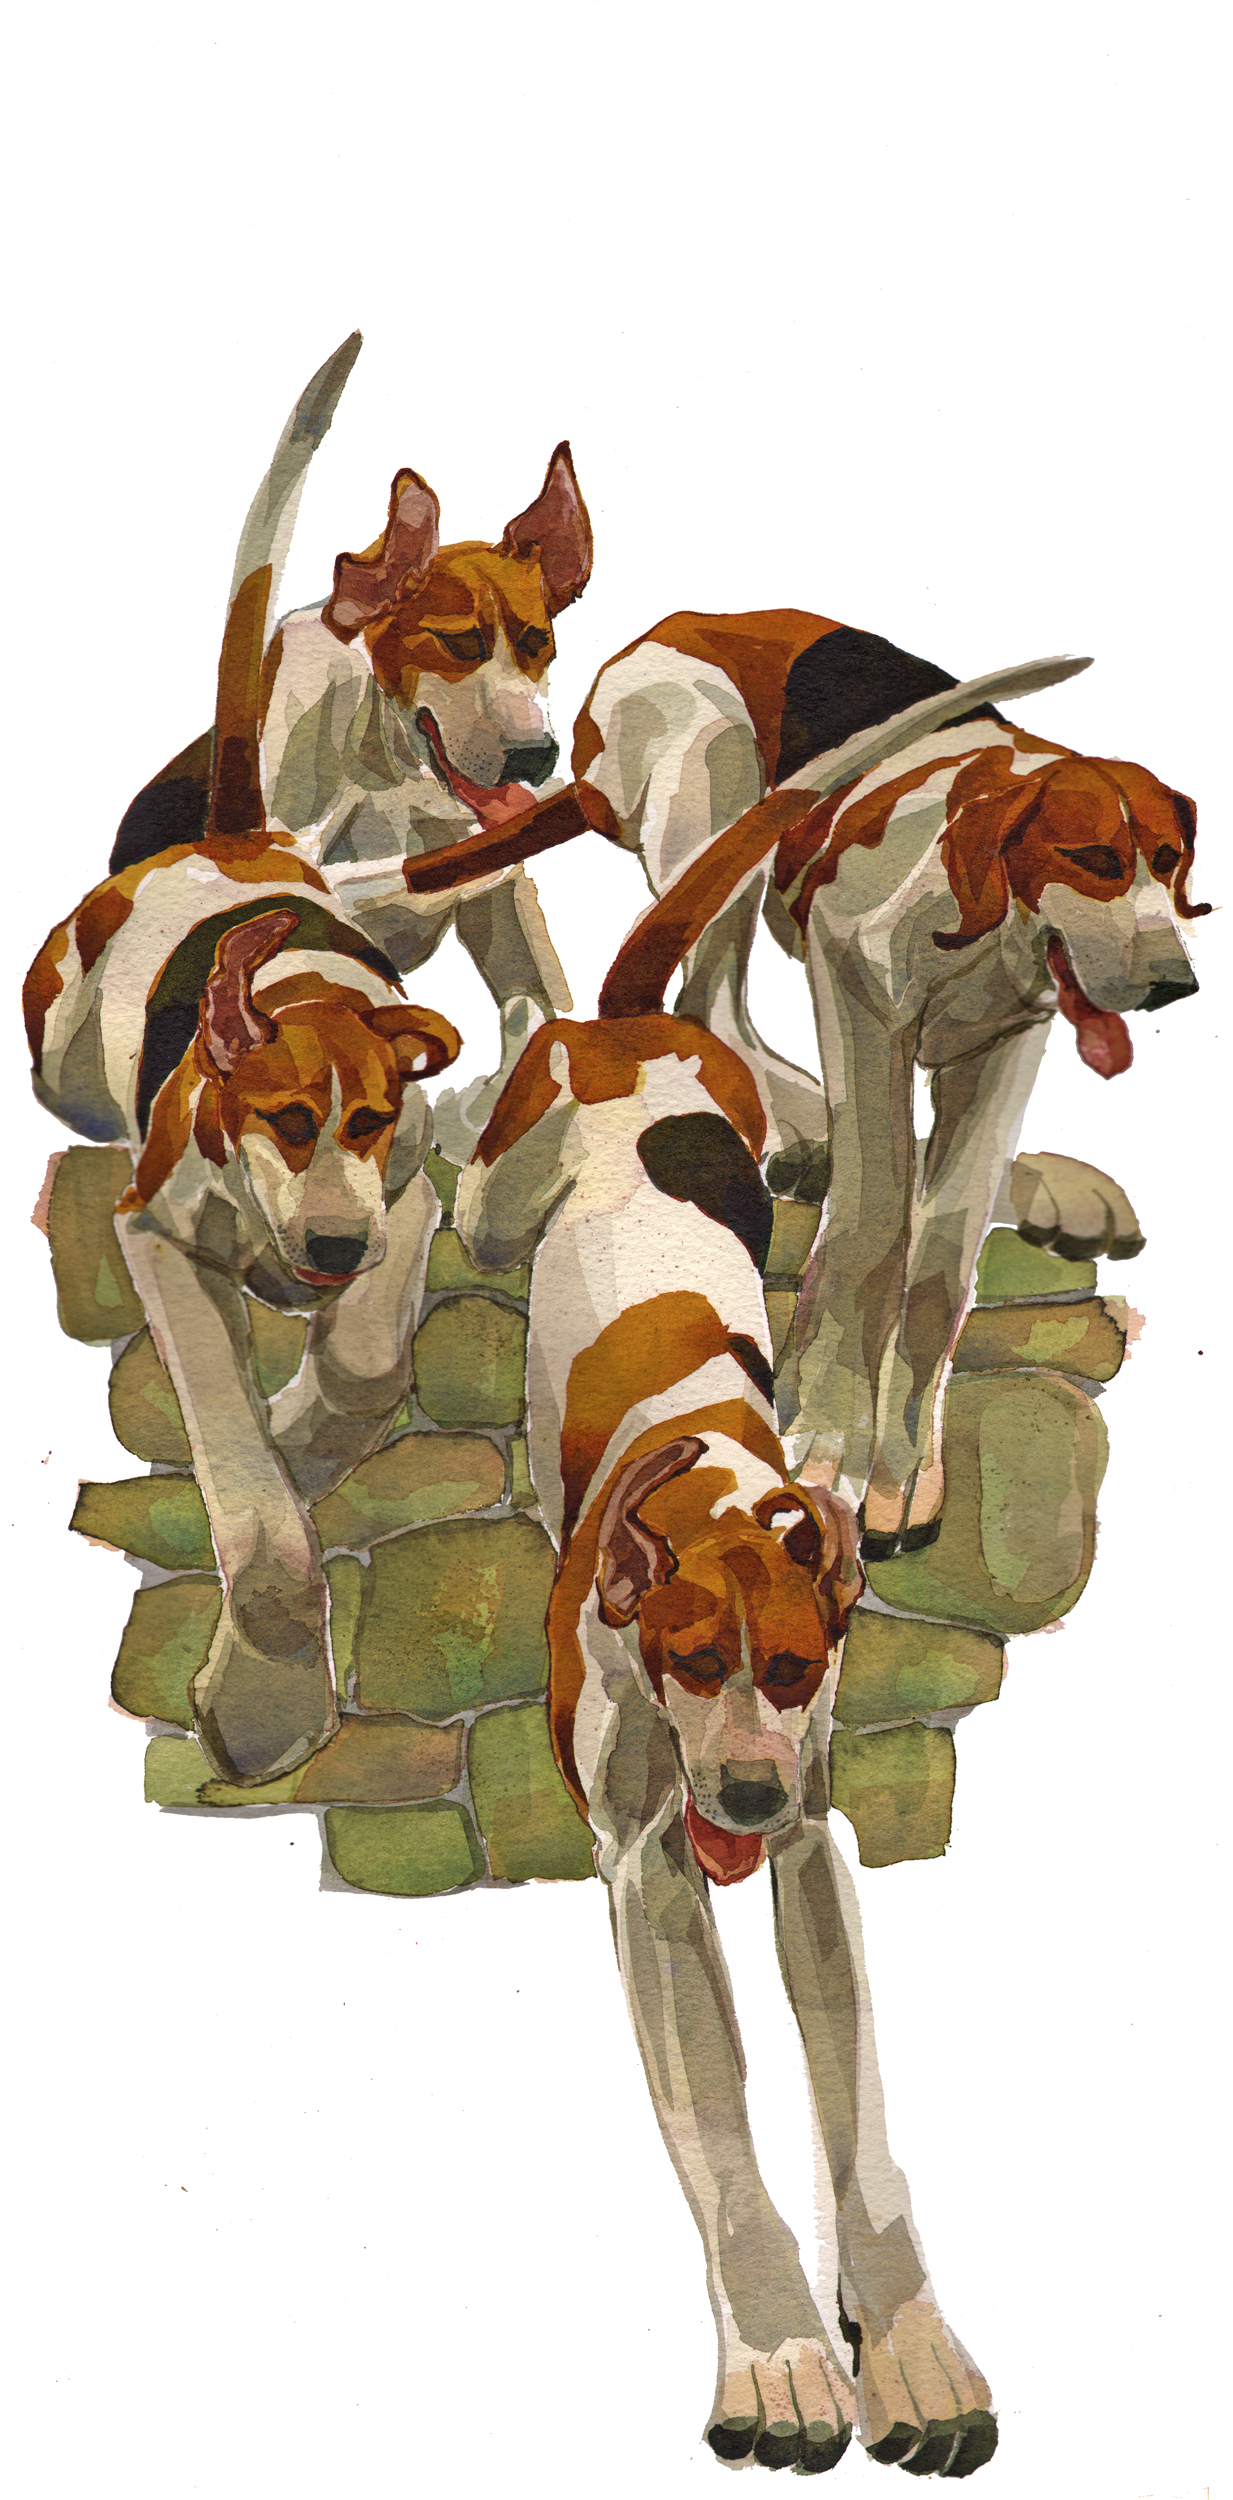 Hounds, over the wall, New image